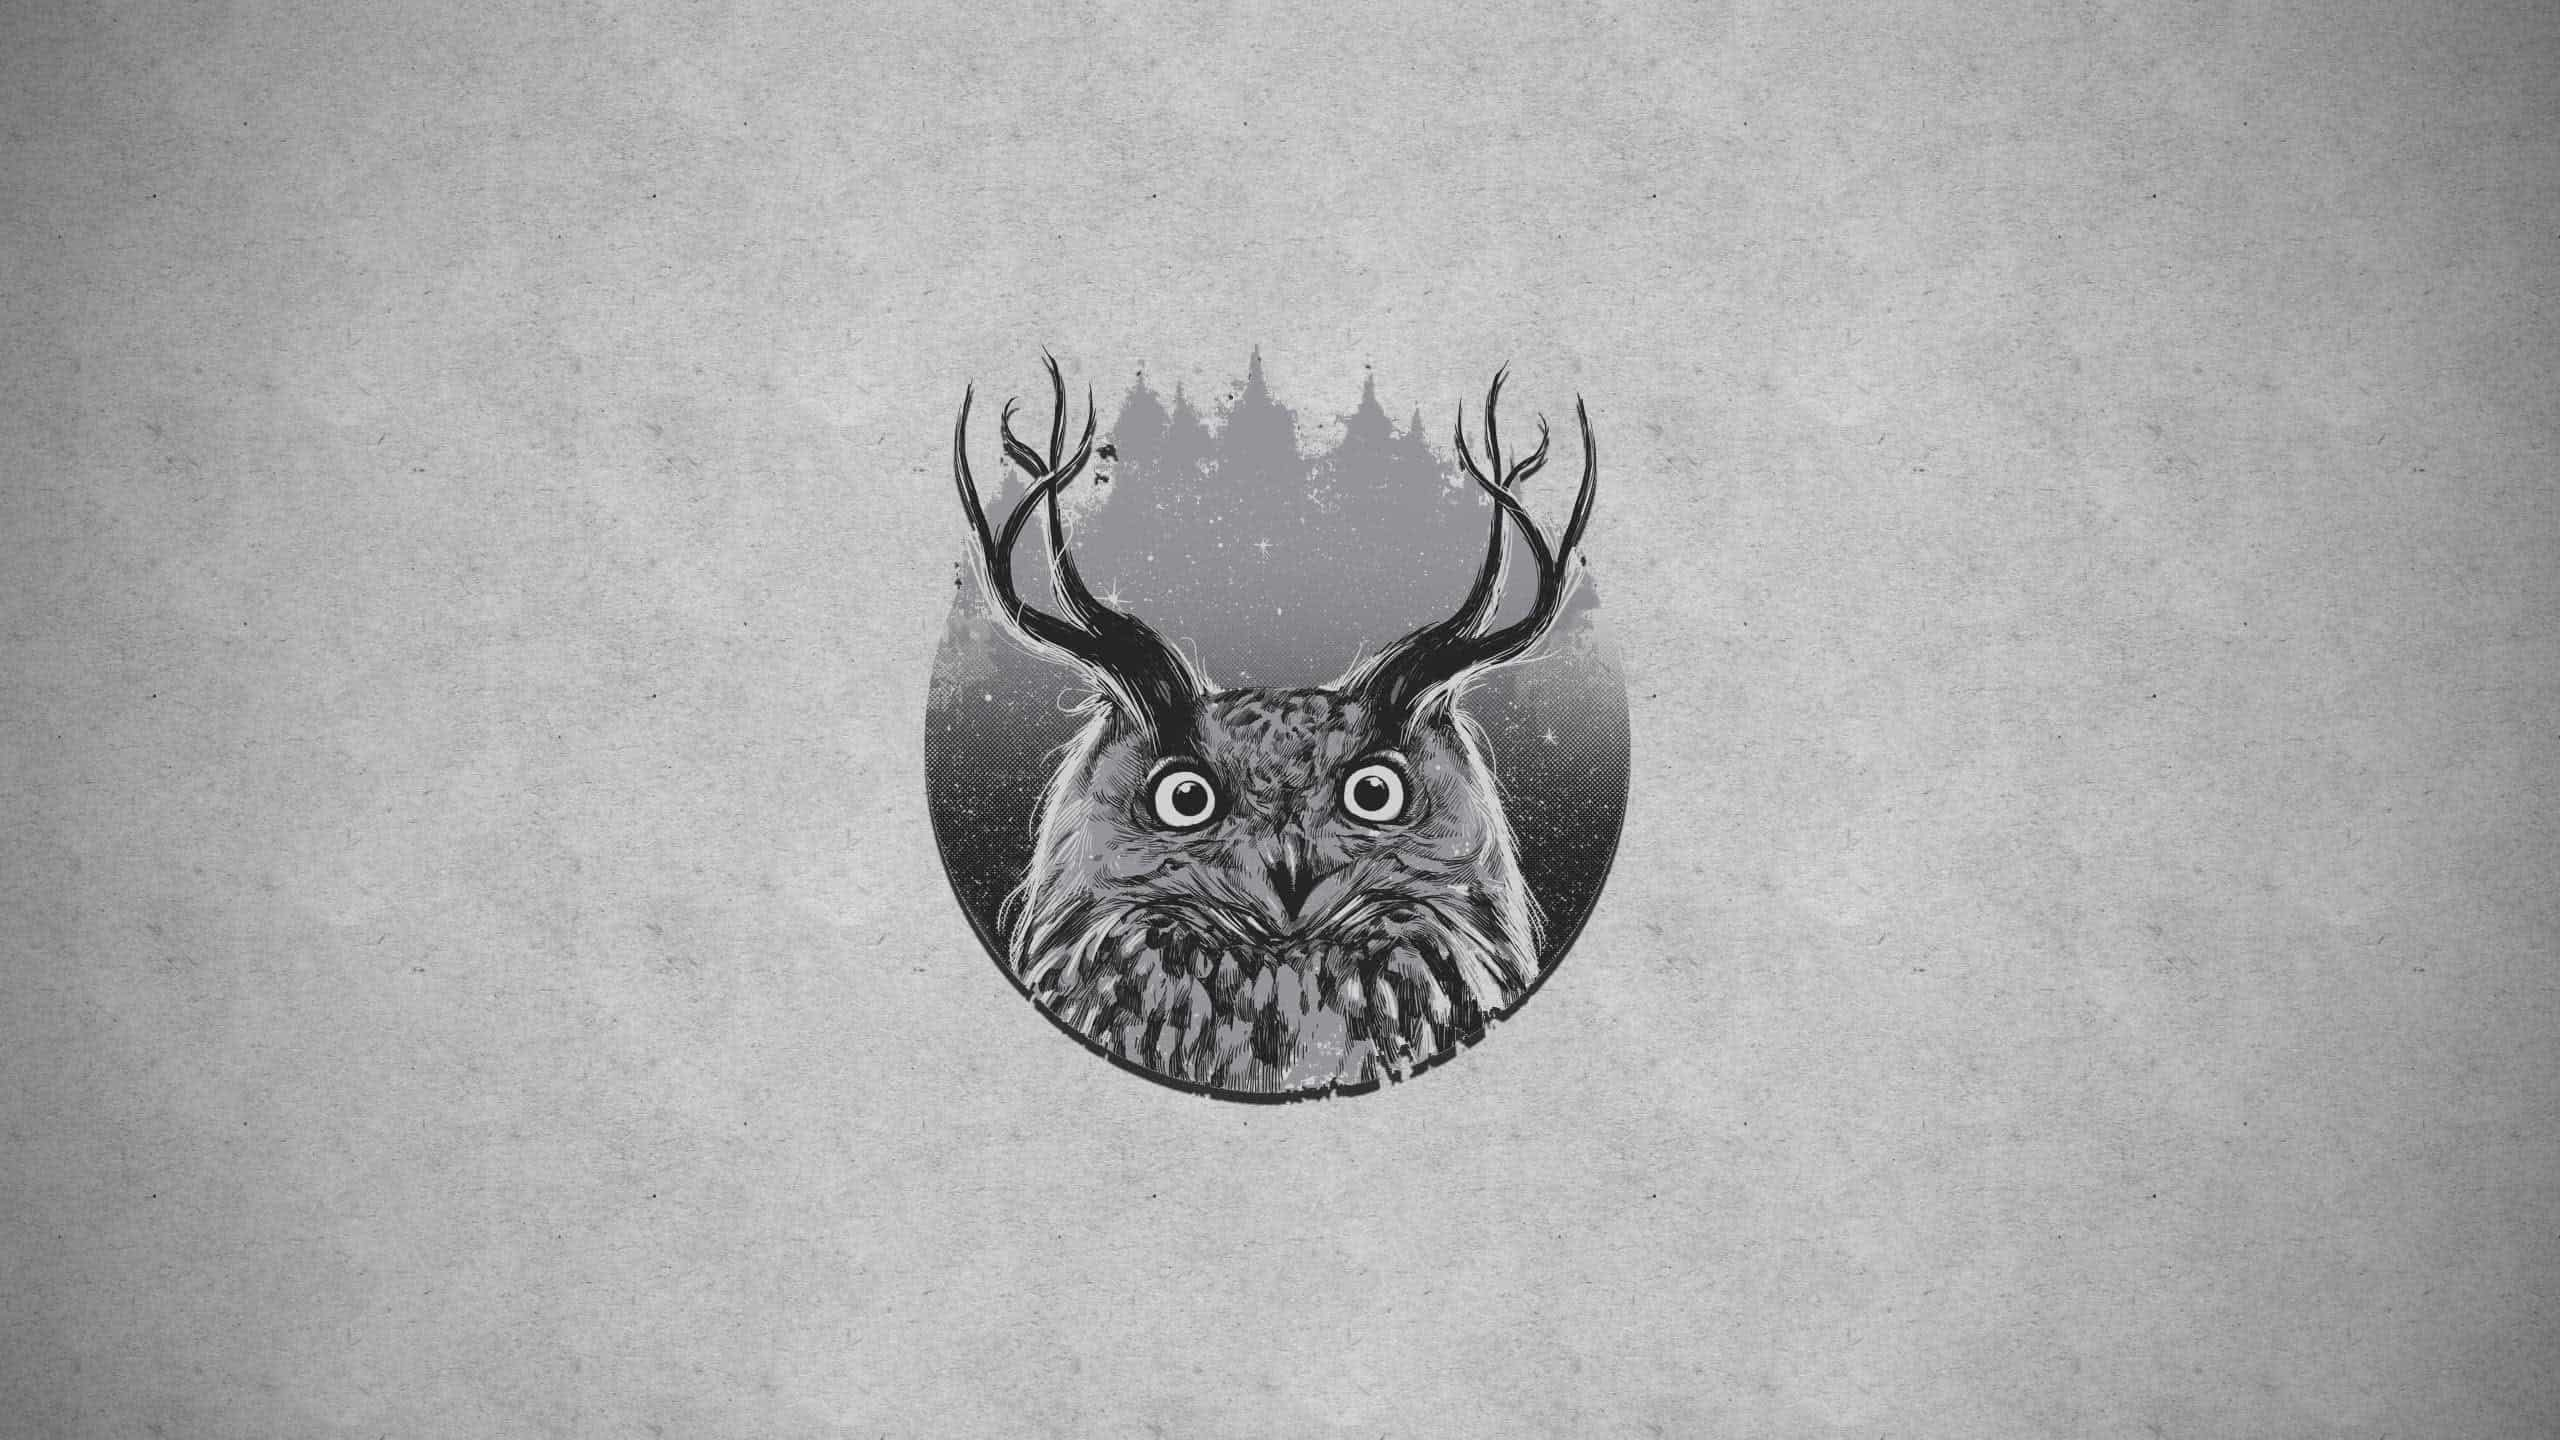 horned owl wqhd 1440p wallpaper